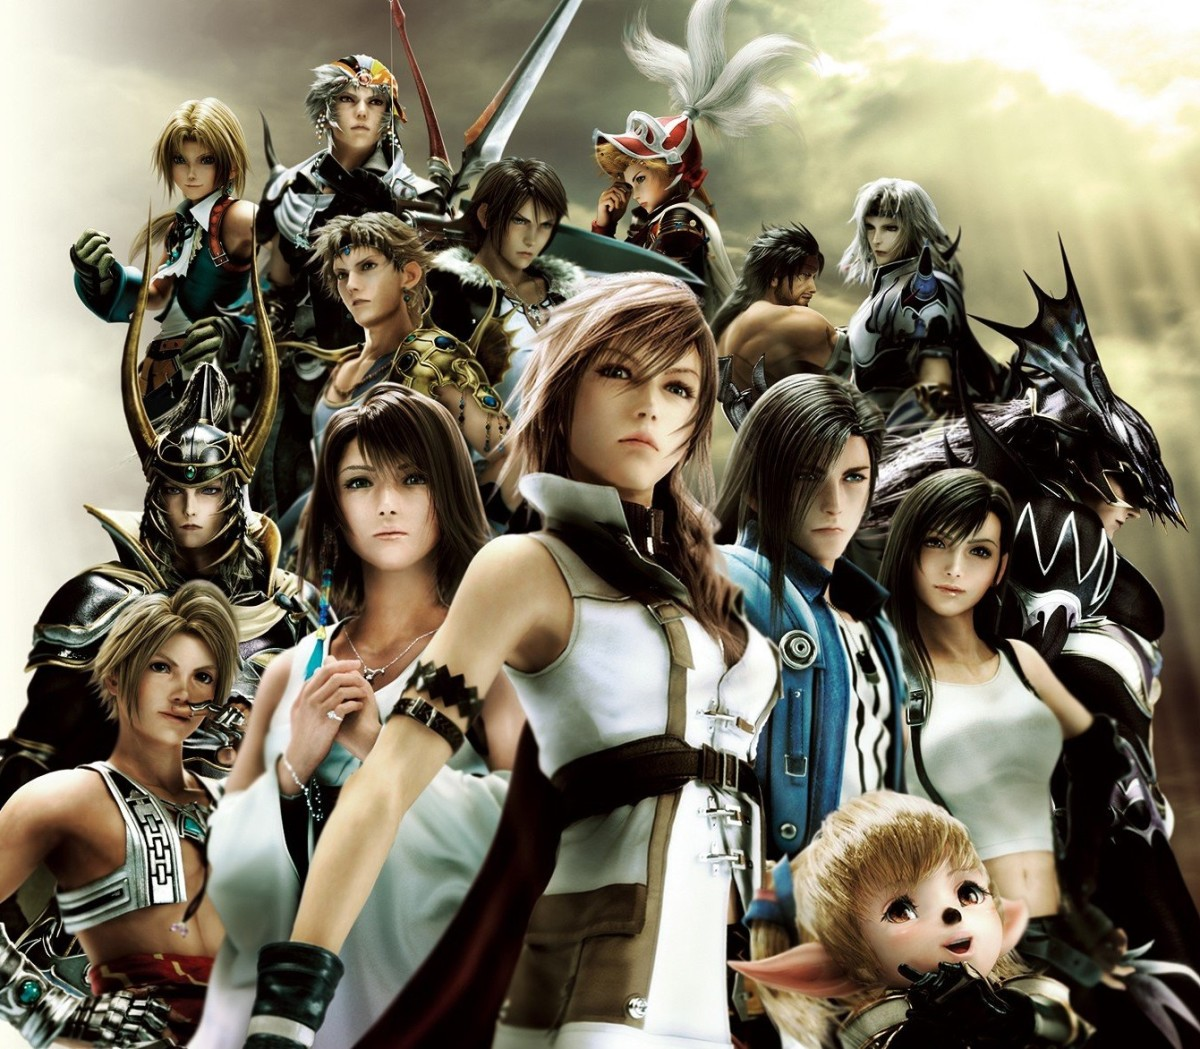 Cosmos's warriors in Dissidia 012